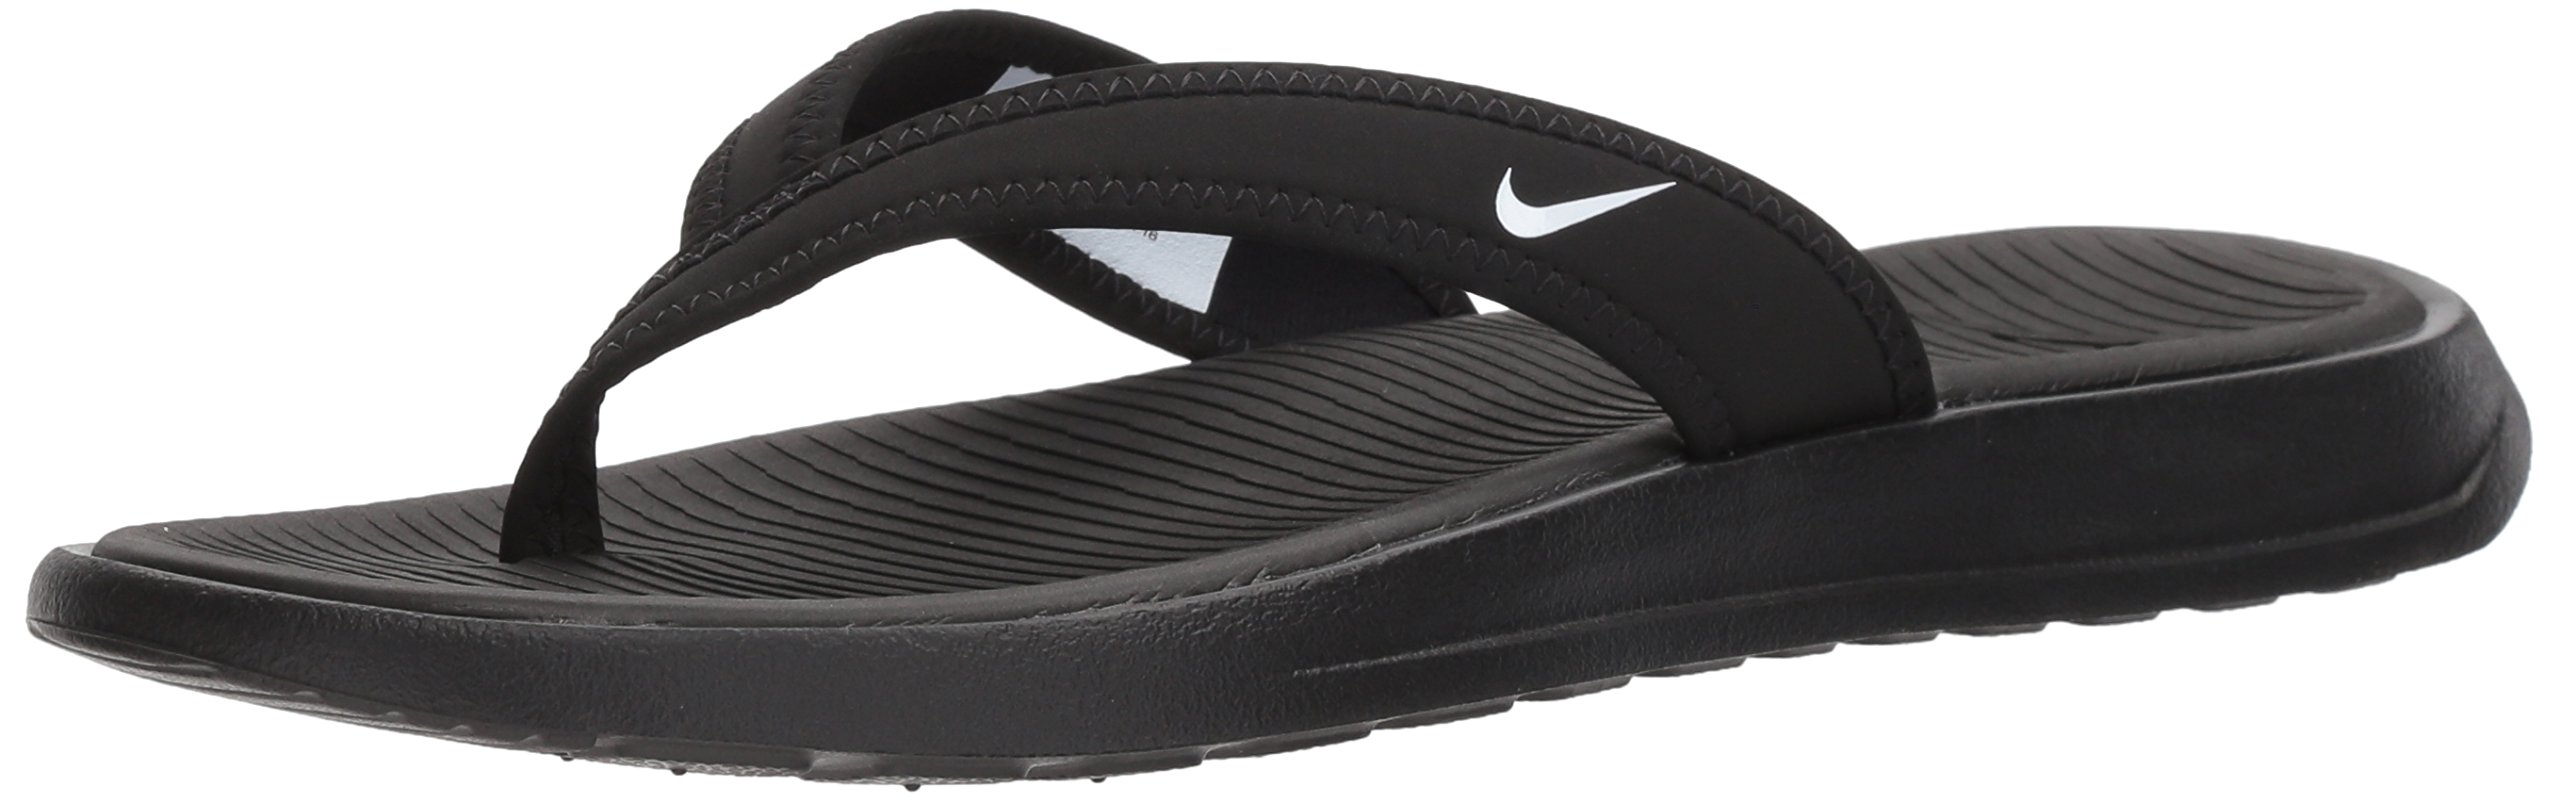 448fbab52a62 Buy Nike Celso Girl Thong Flip Flops Open Toe Shoes Brown Womens in ...